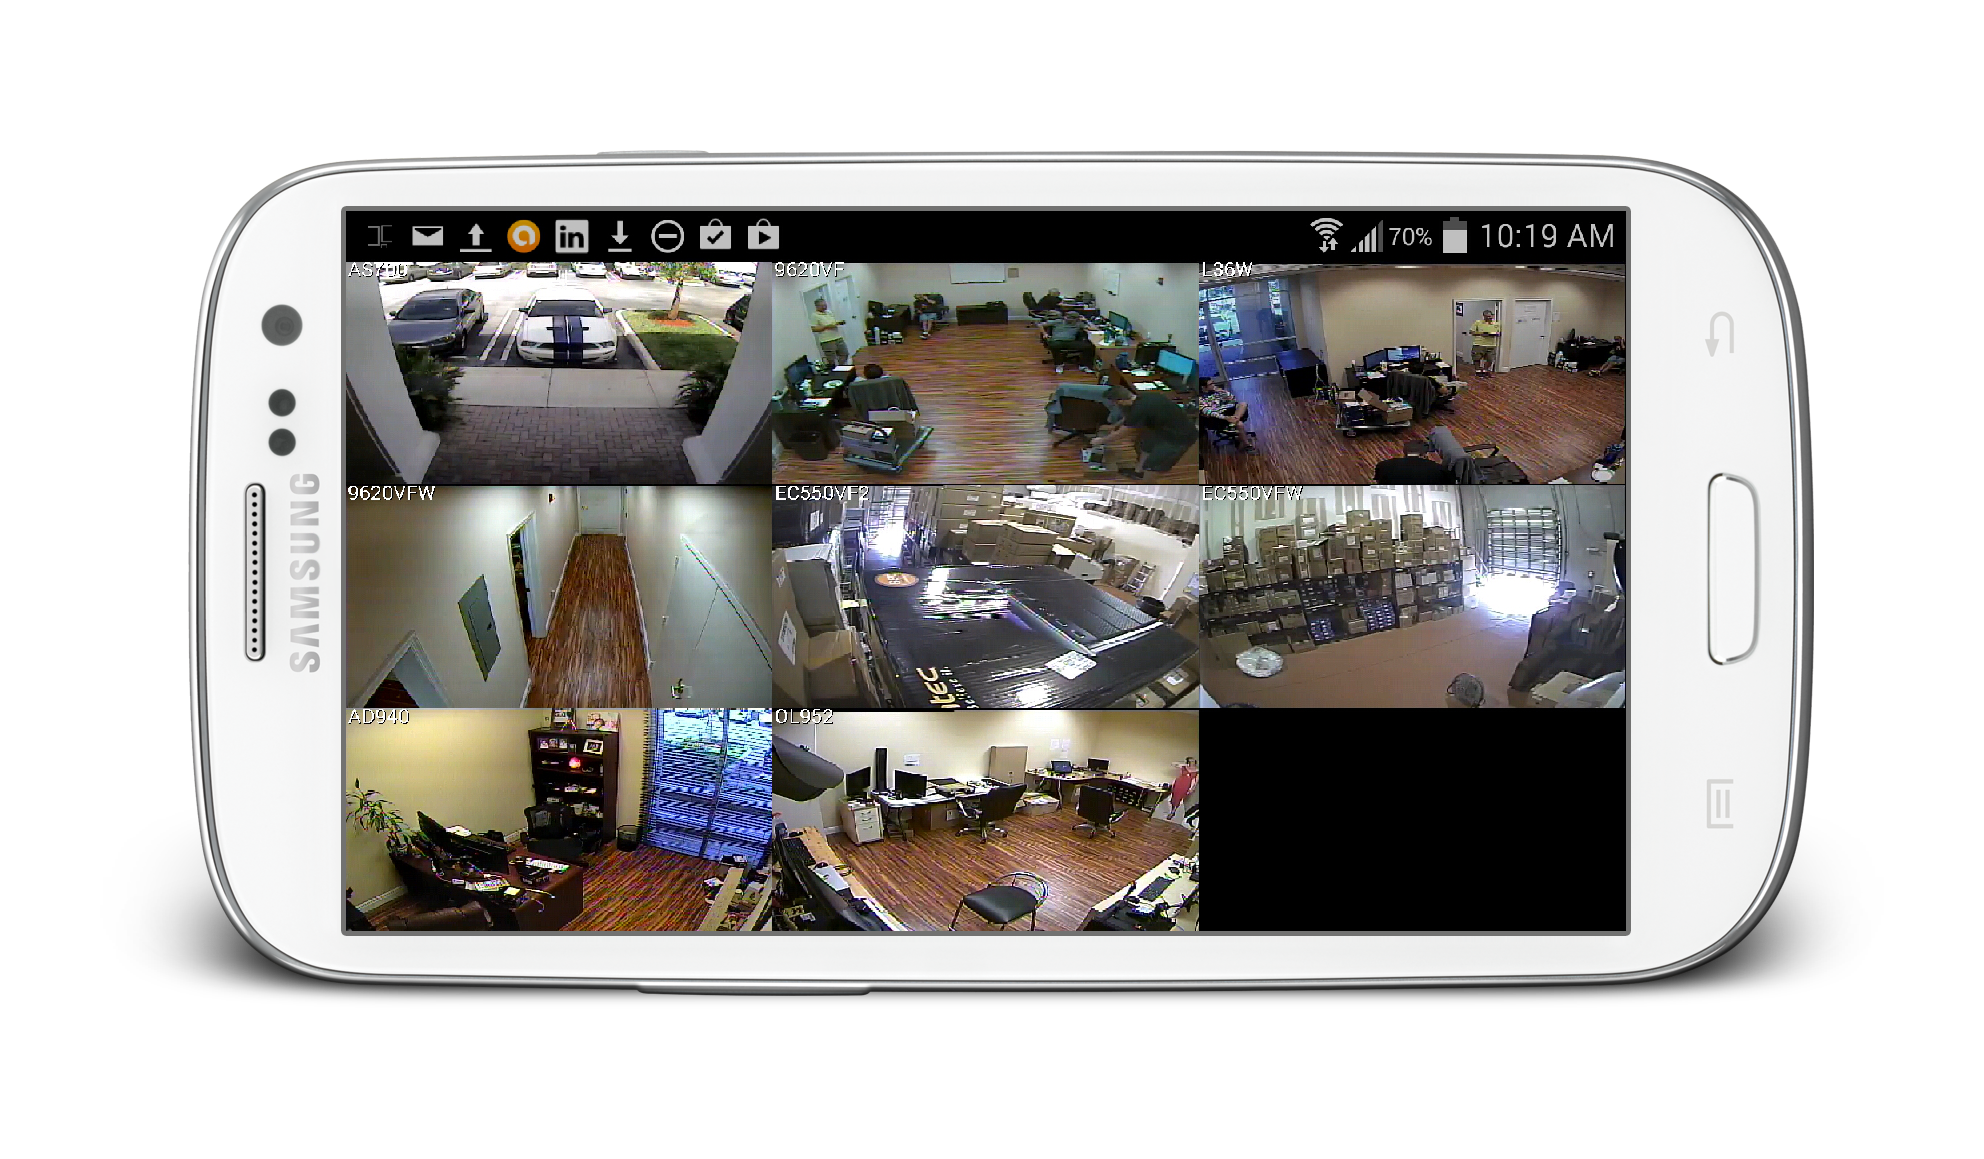 Surveillance camera recording png. View security cameras from